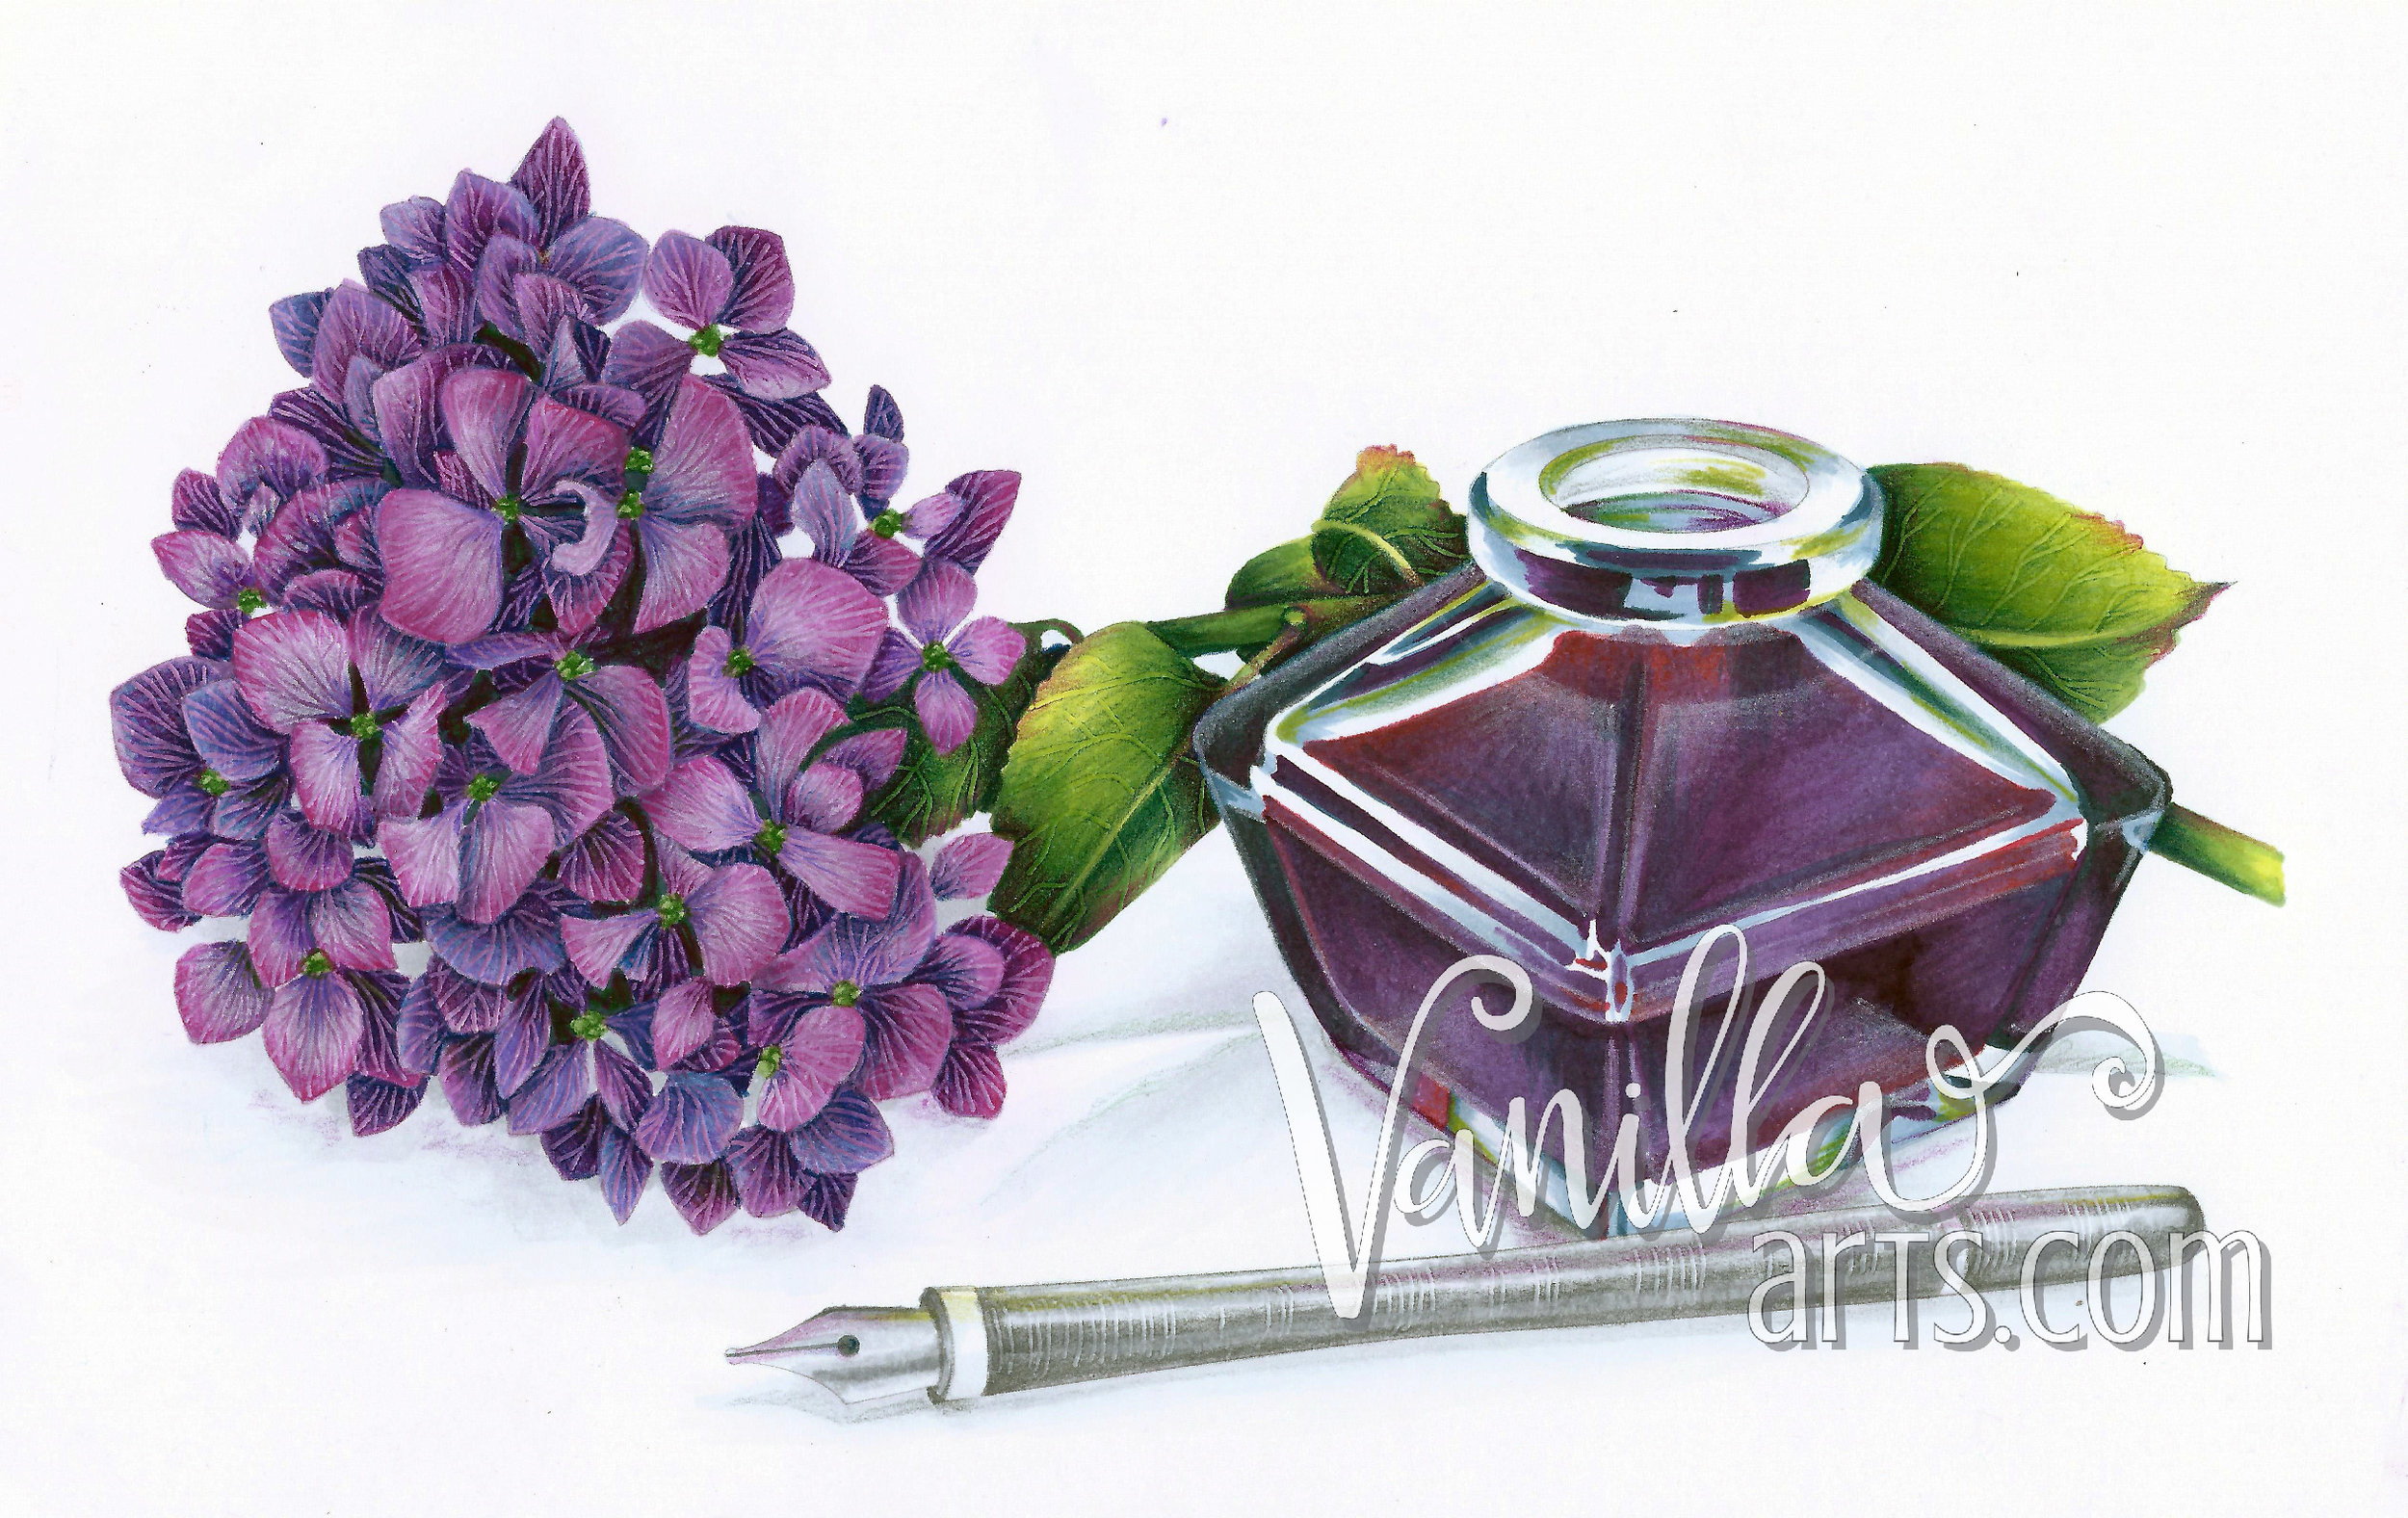 Learn to shift color temperatures. Art of Coloring, challenge level Copic & Colored Pencil classes.   VanillaArts.com